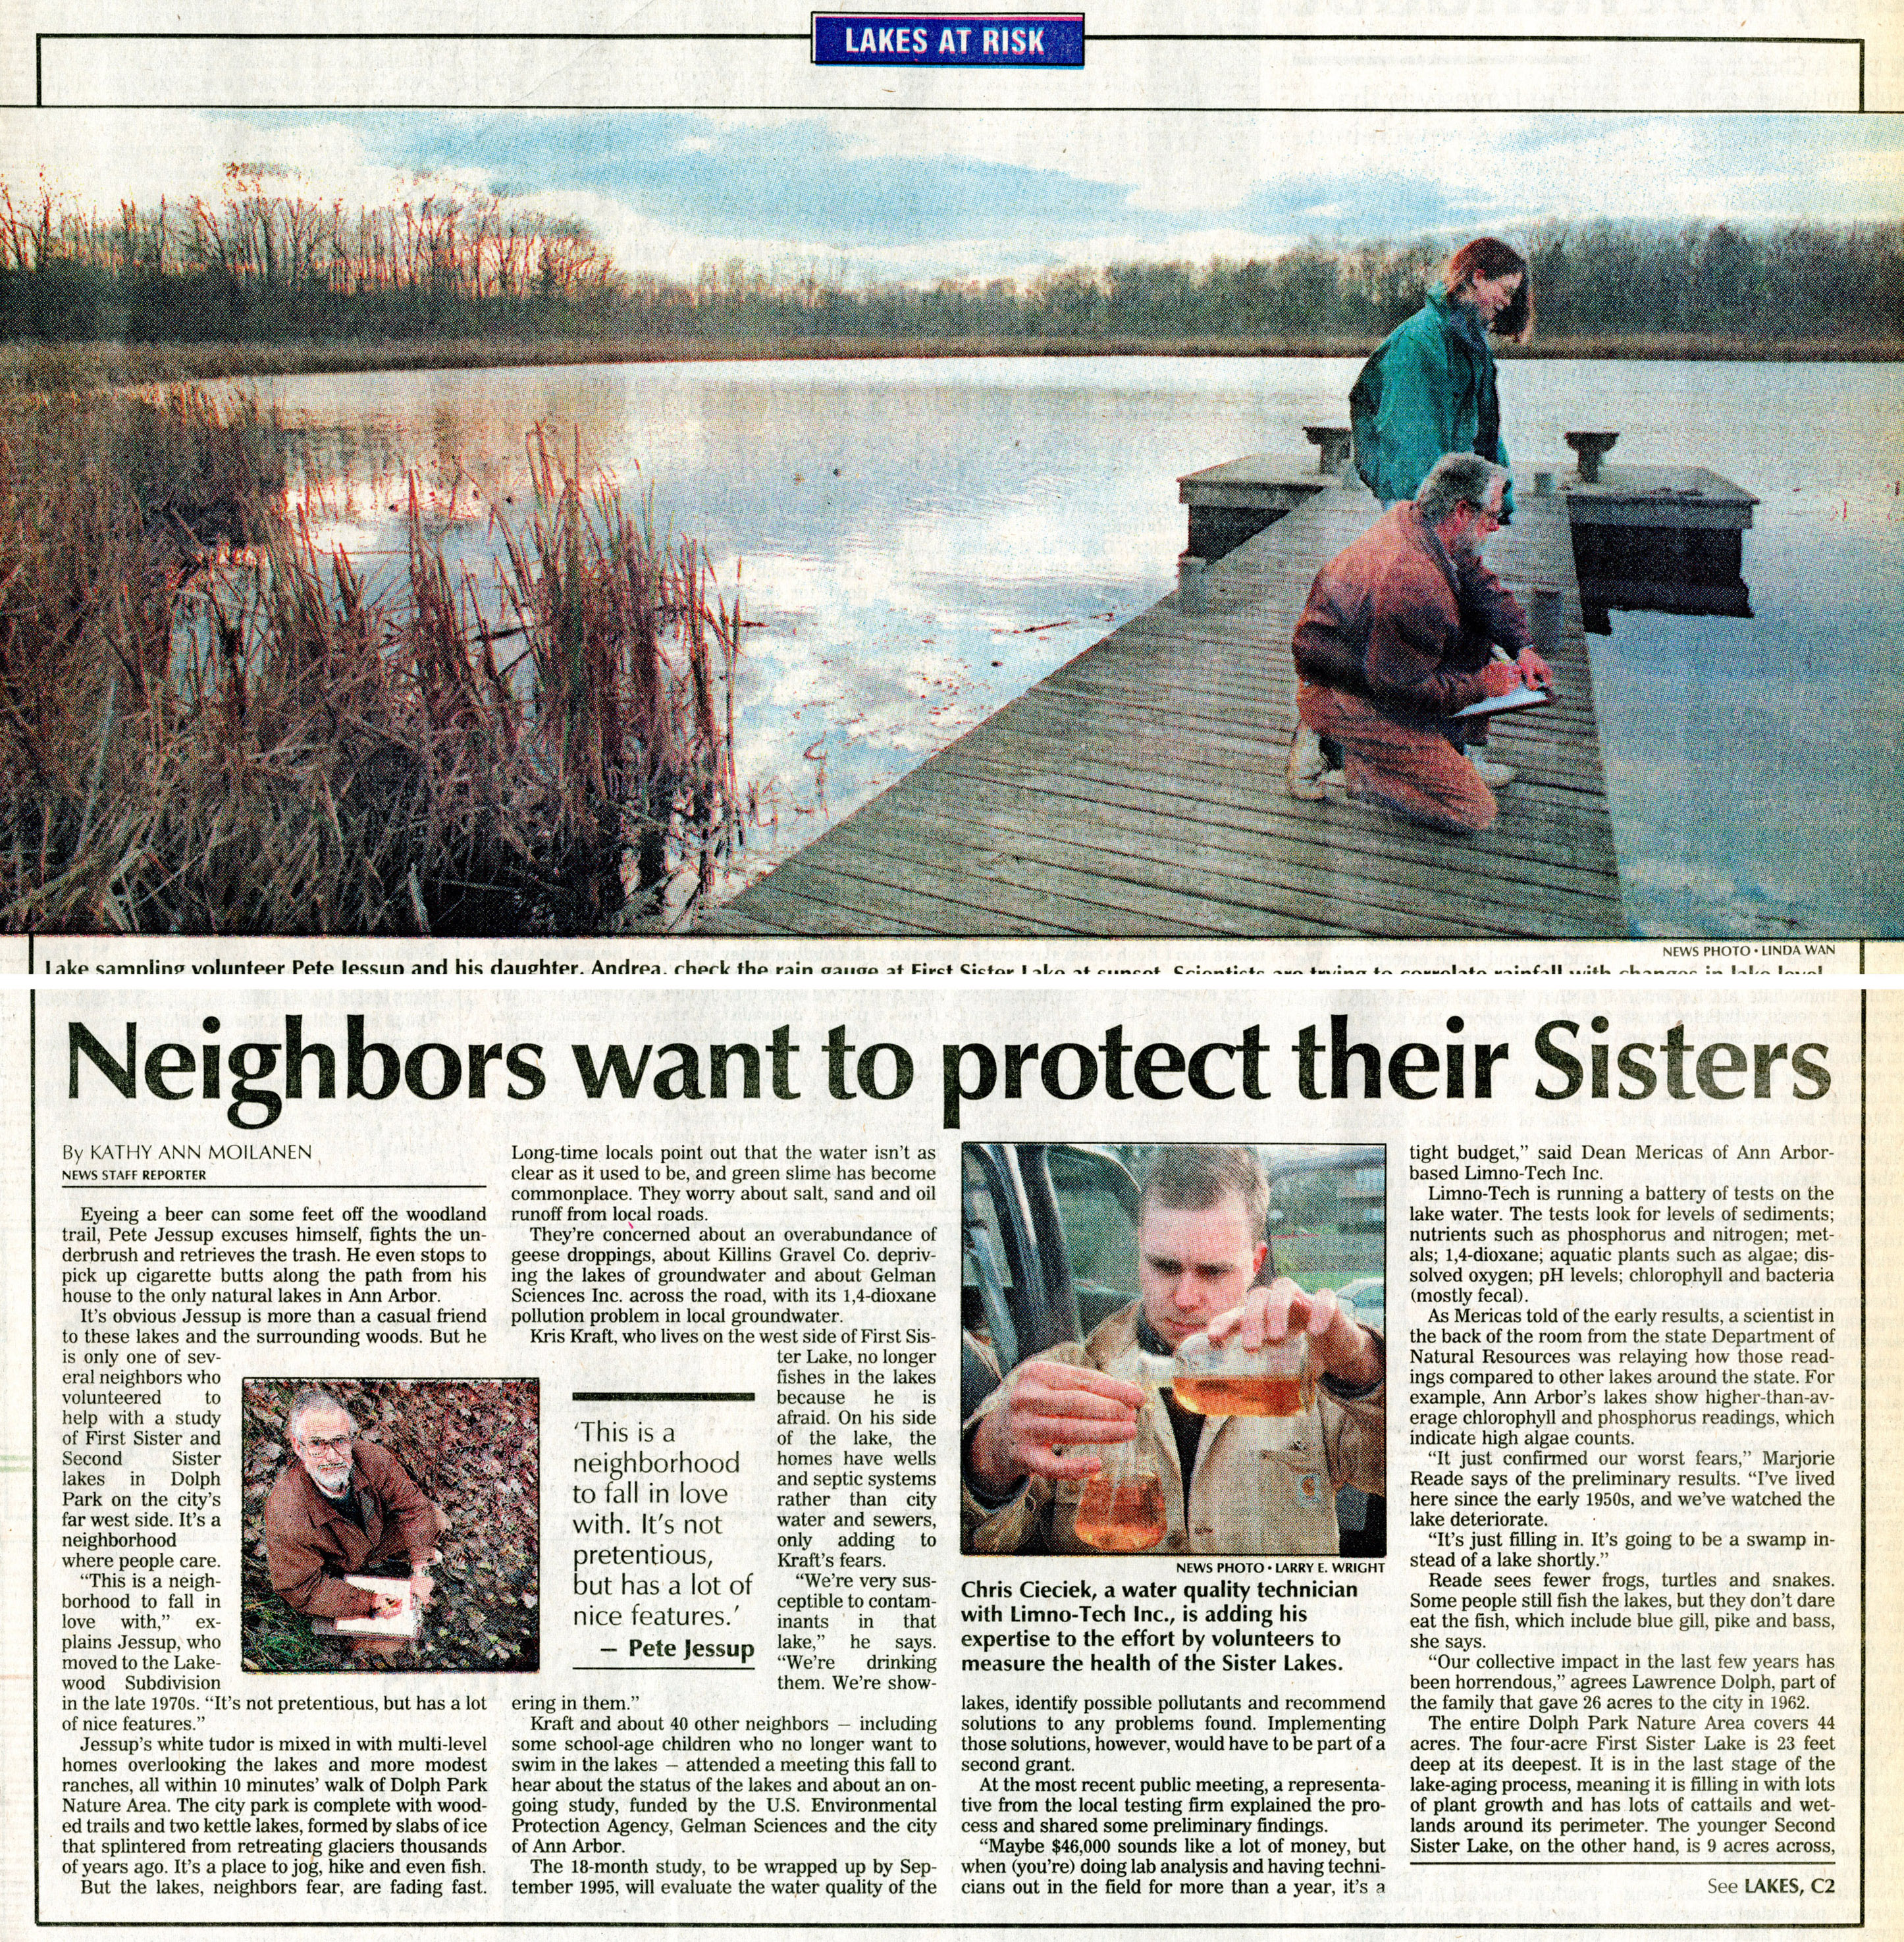 Neighbors Want to Protect Their Sisters image